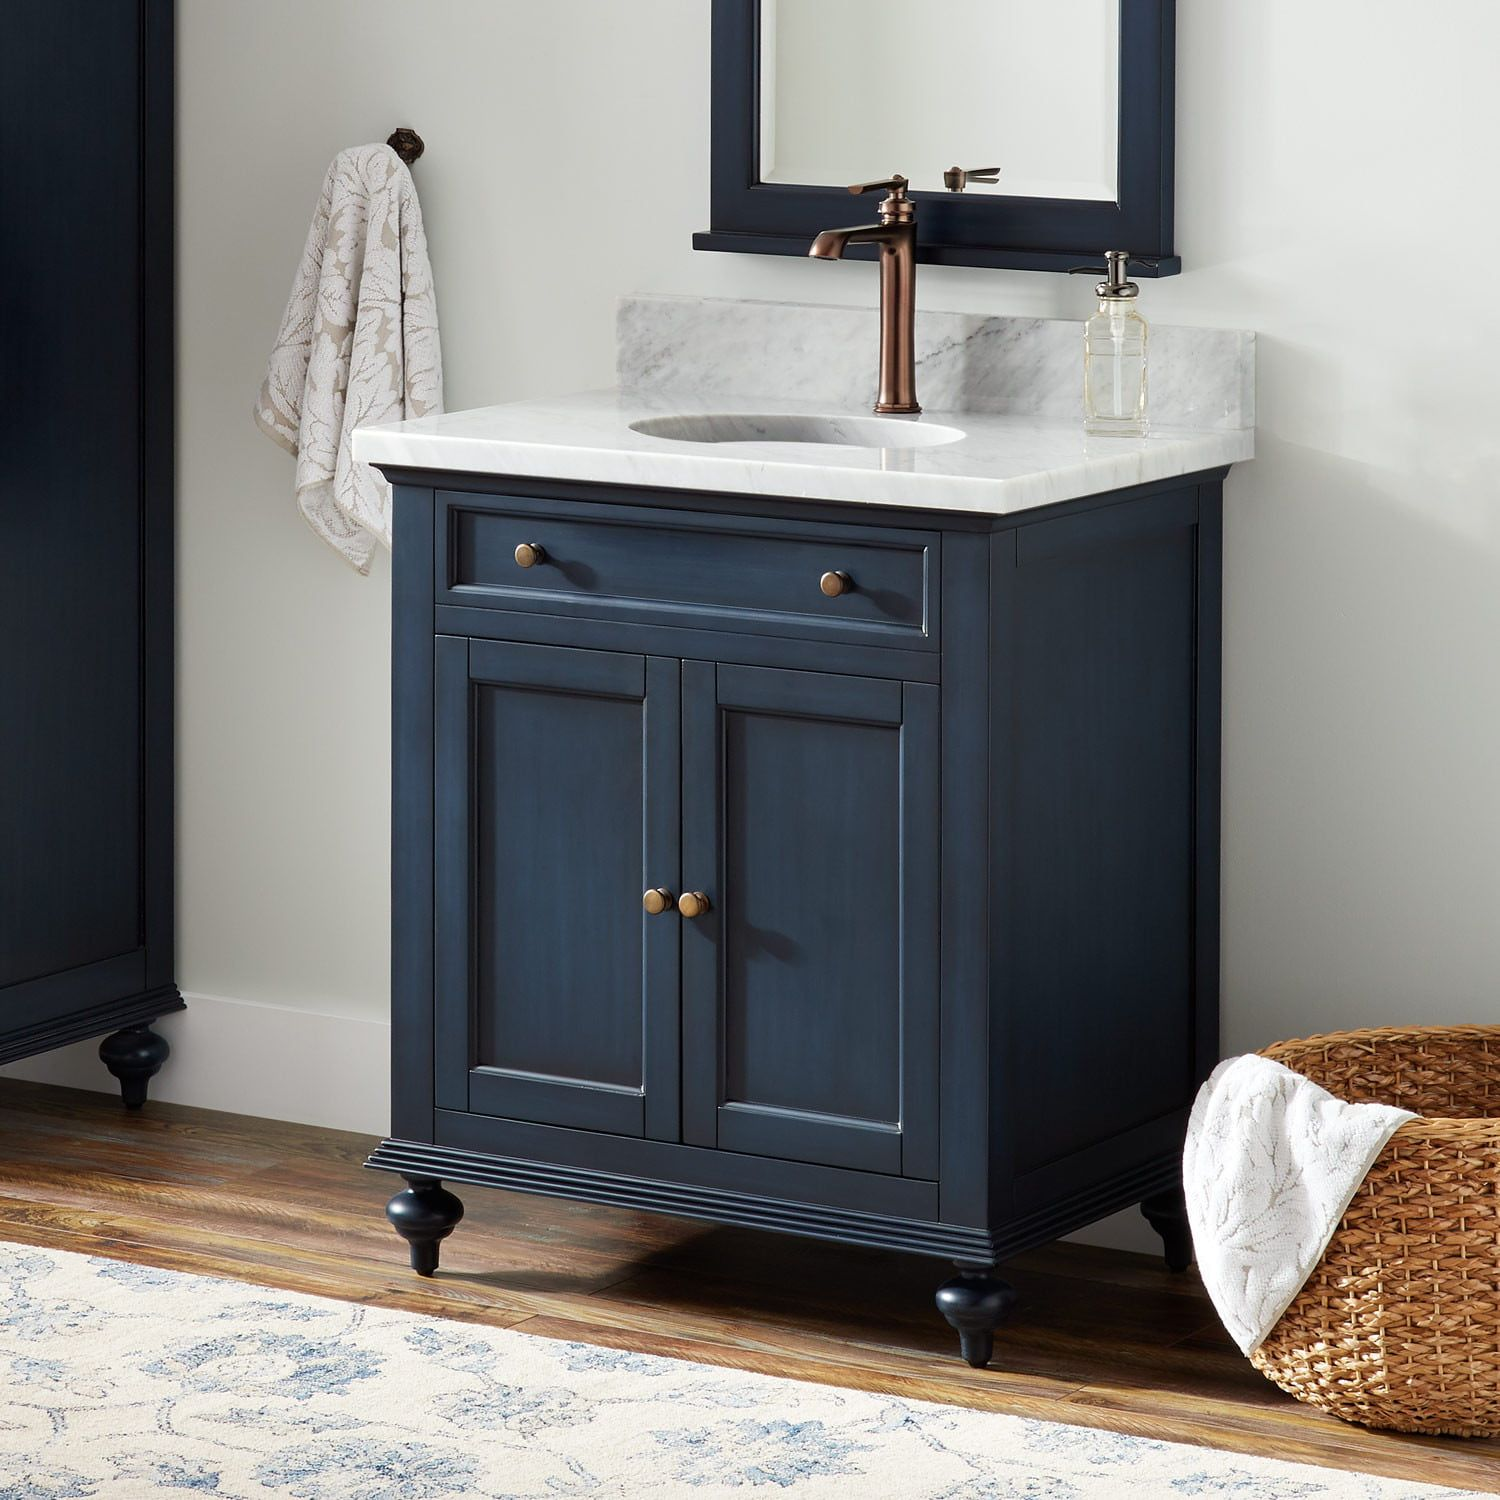 30 Keller Mahogany Vanity For Undermount Sink Vintage Navy Blue